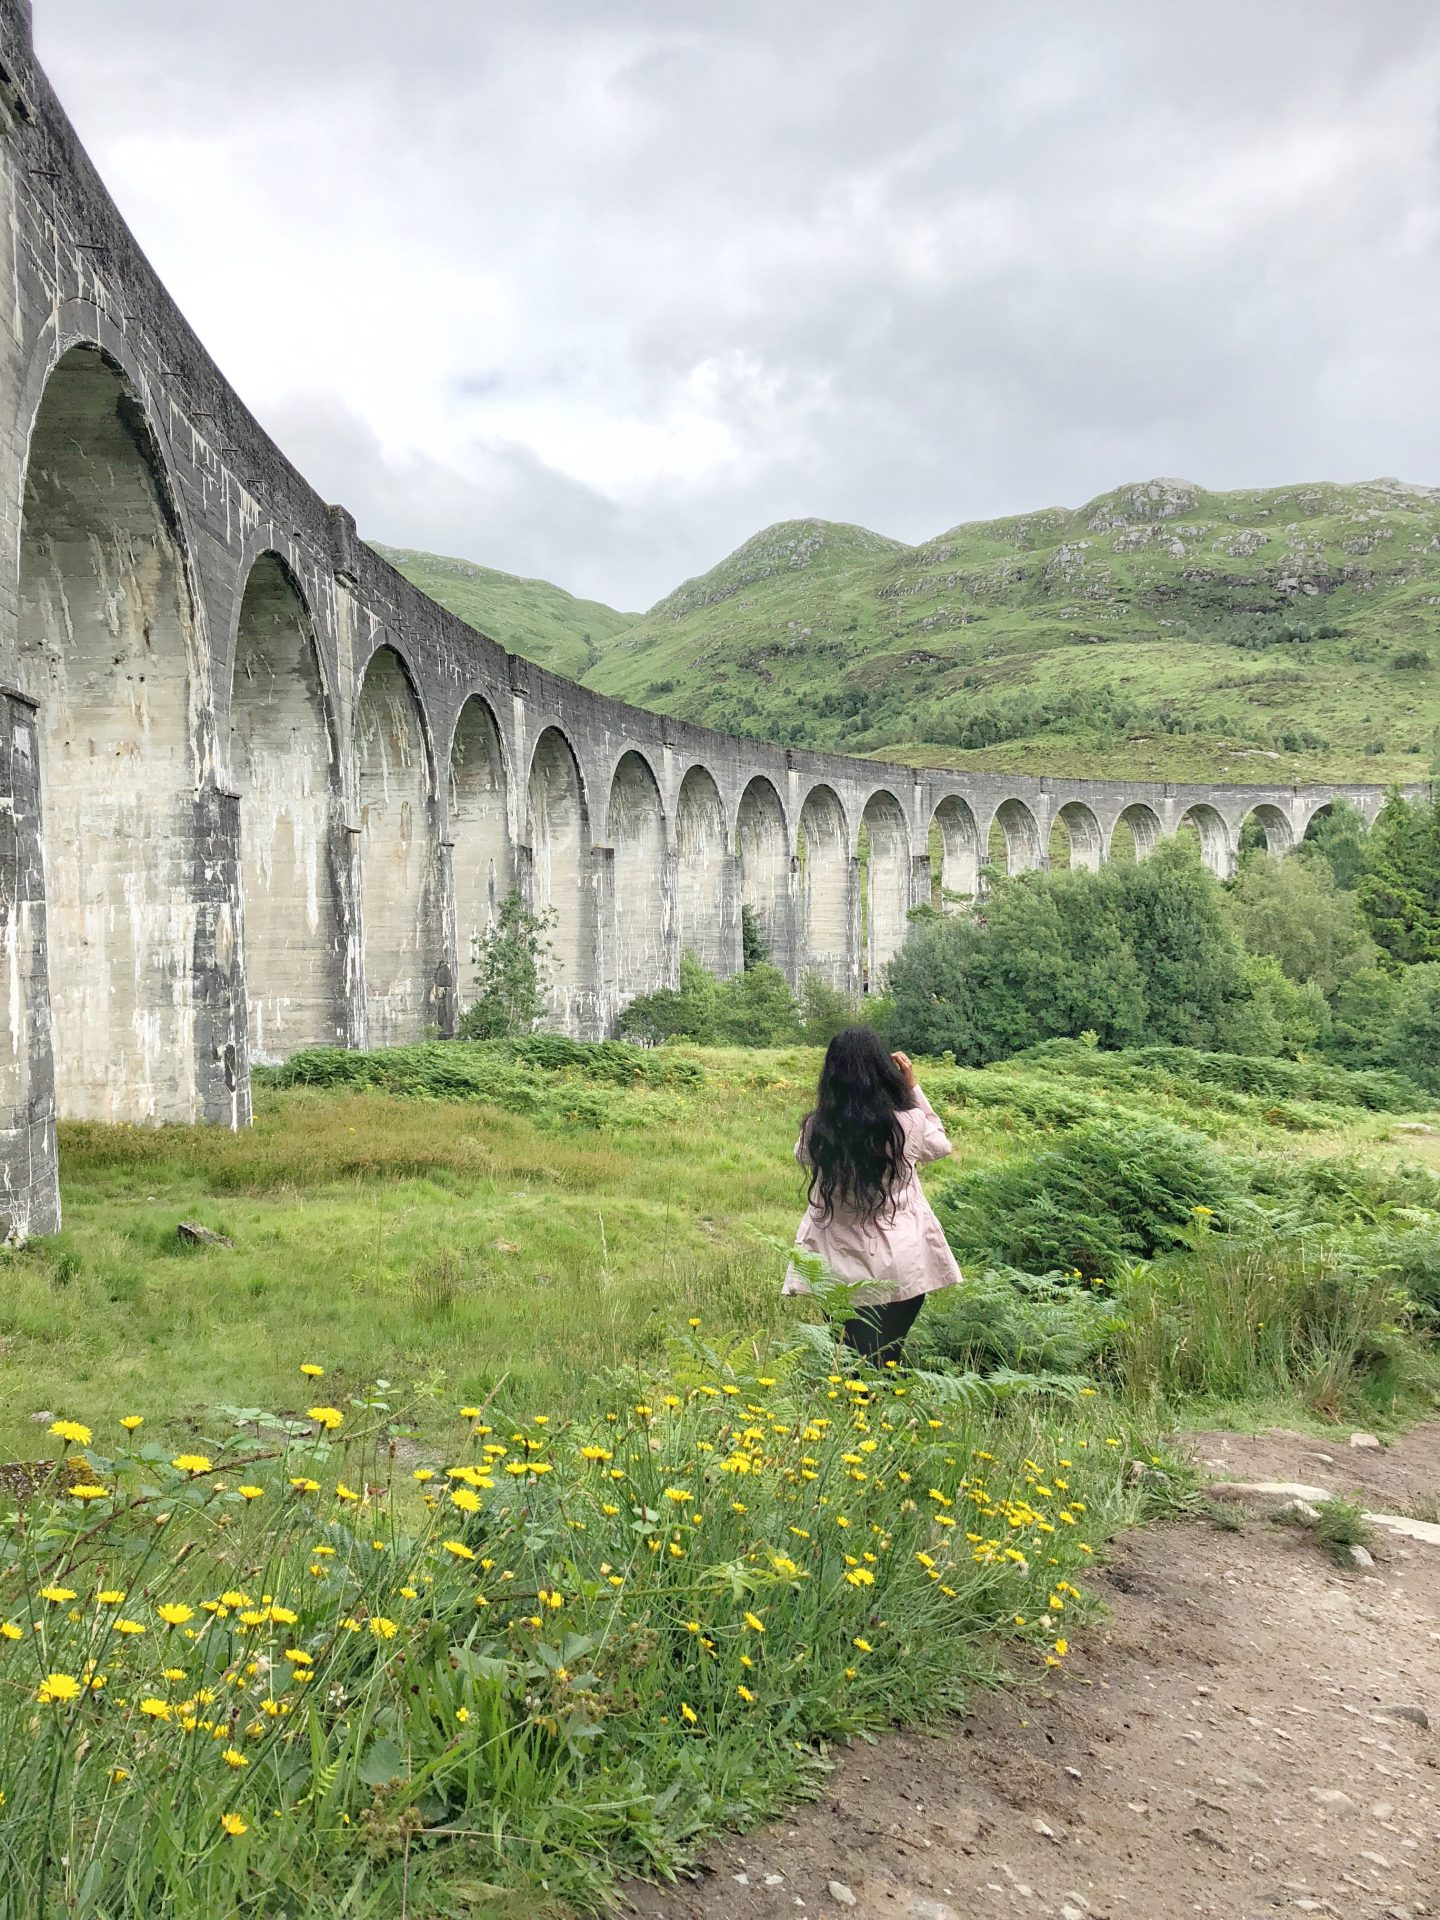 The Glenfinnan Viaduct : How to Get a Real Life Harry Potter Experience